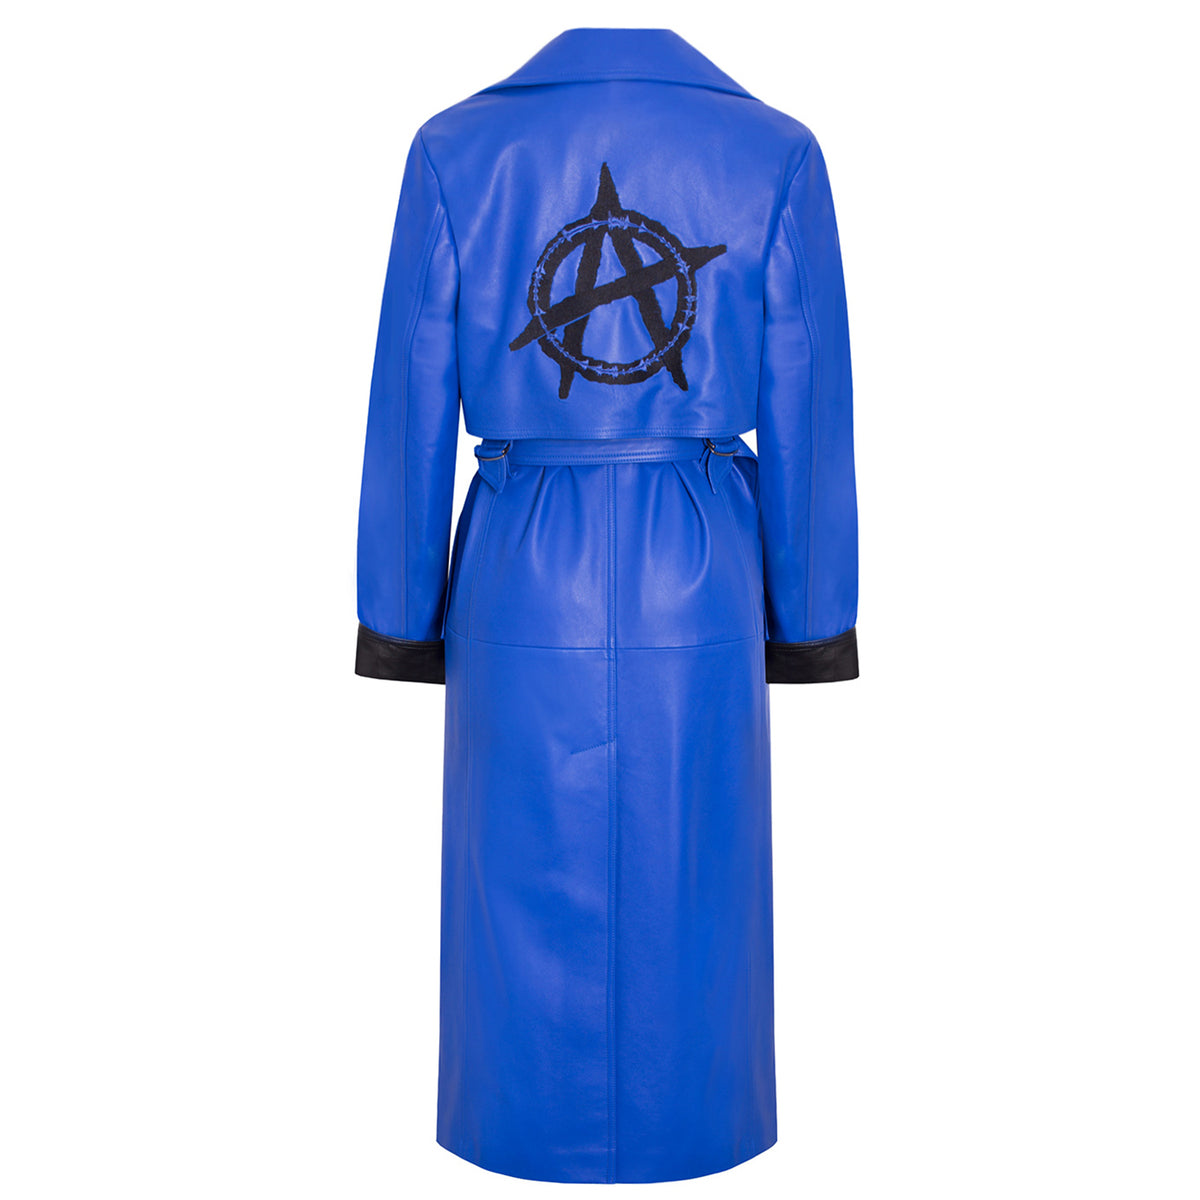 'Sky' Leather Trench Coat with Embroidery - VOLS & ORIGINAL